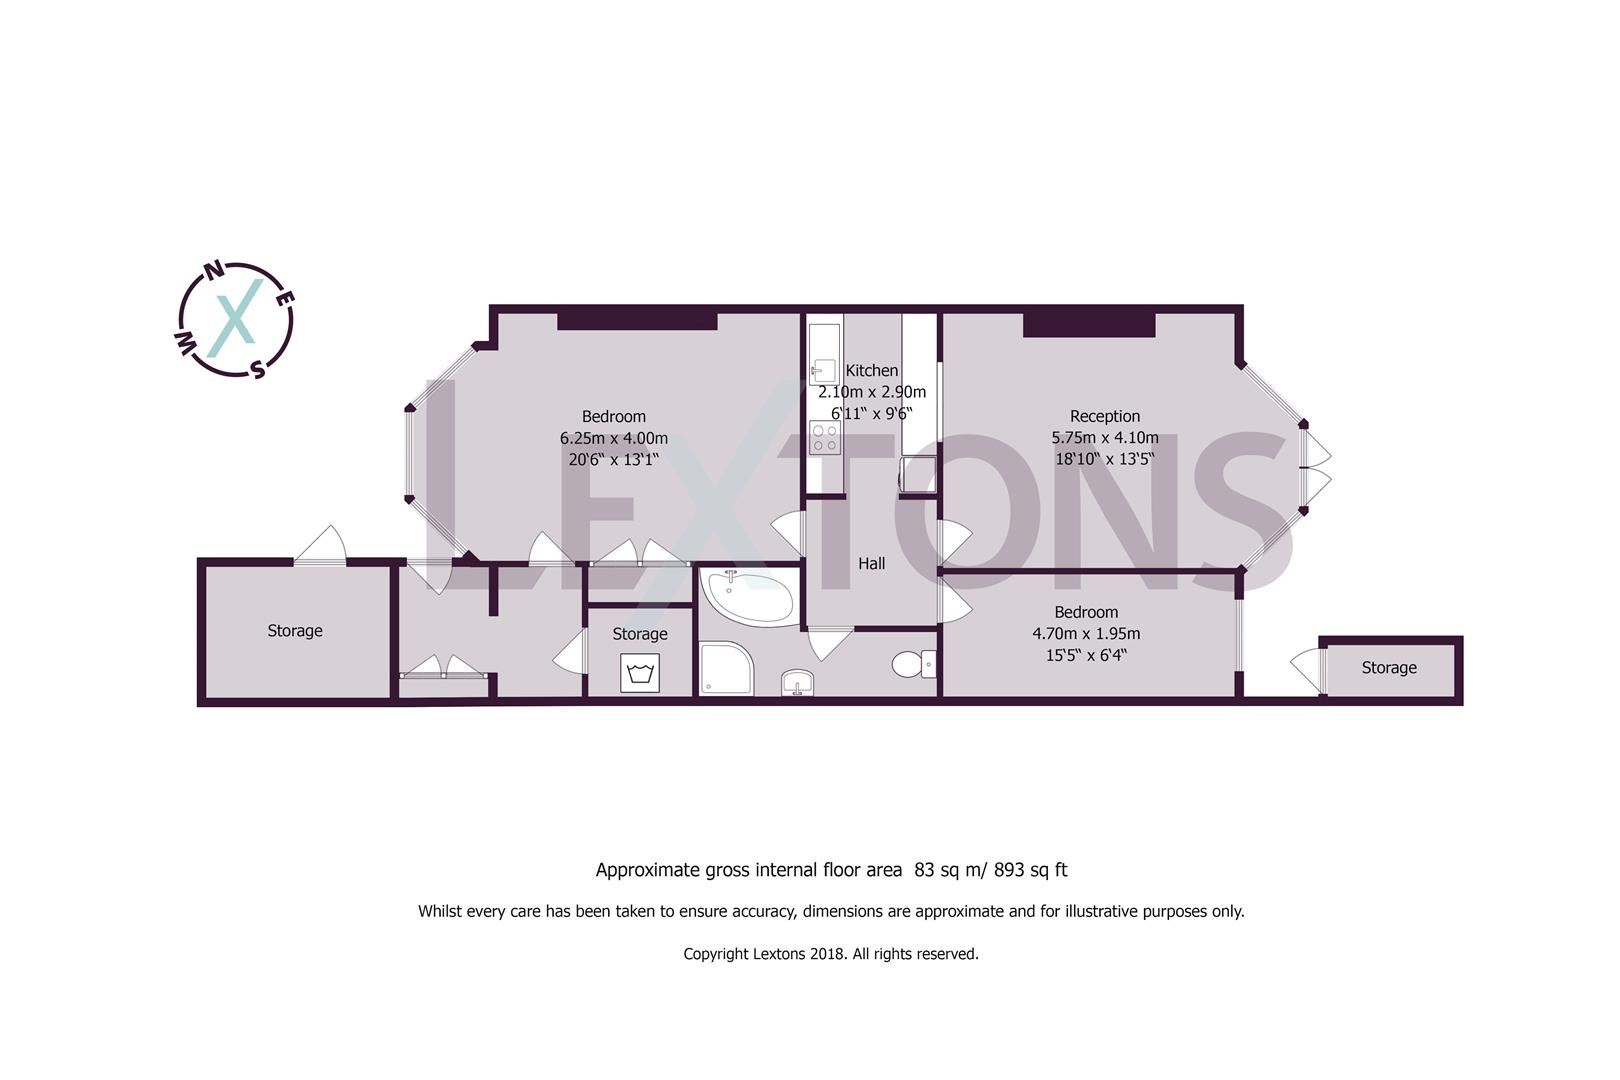 Floorplans For St. Aubyns, Hove